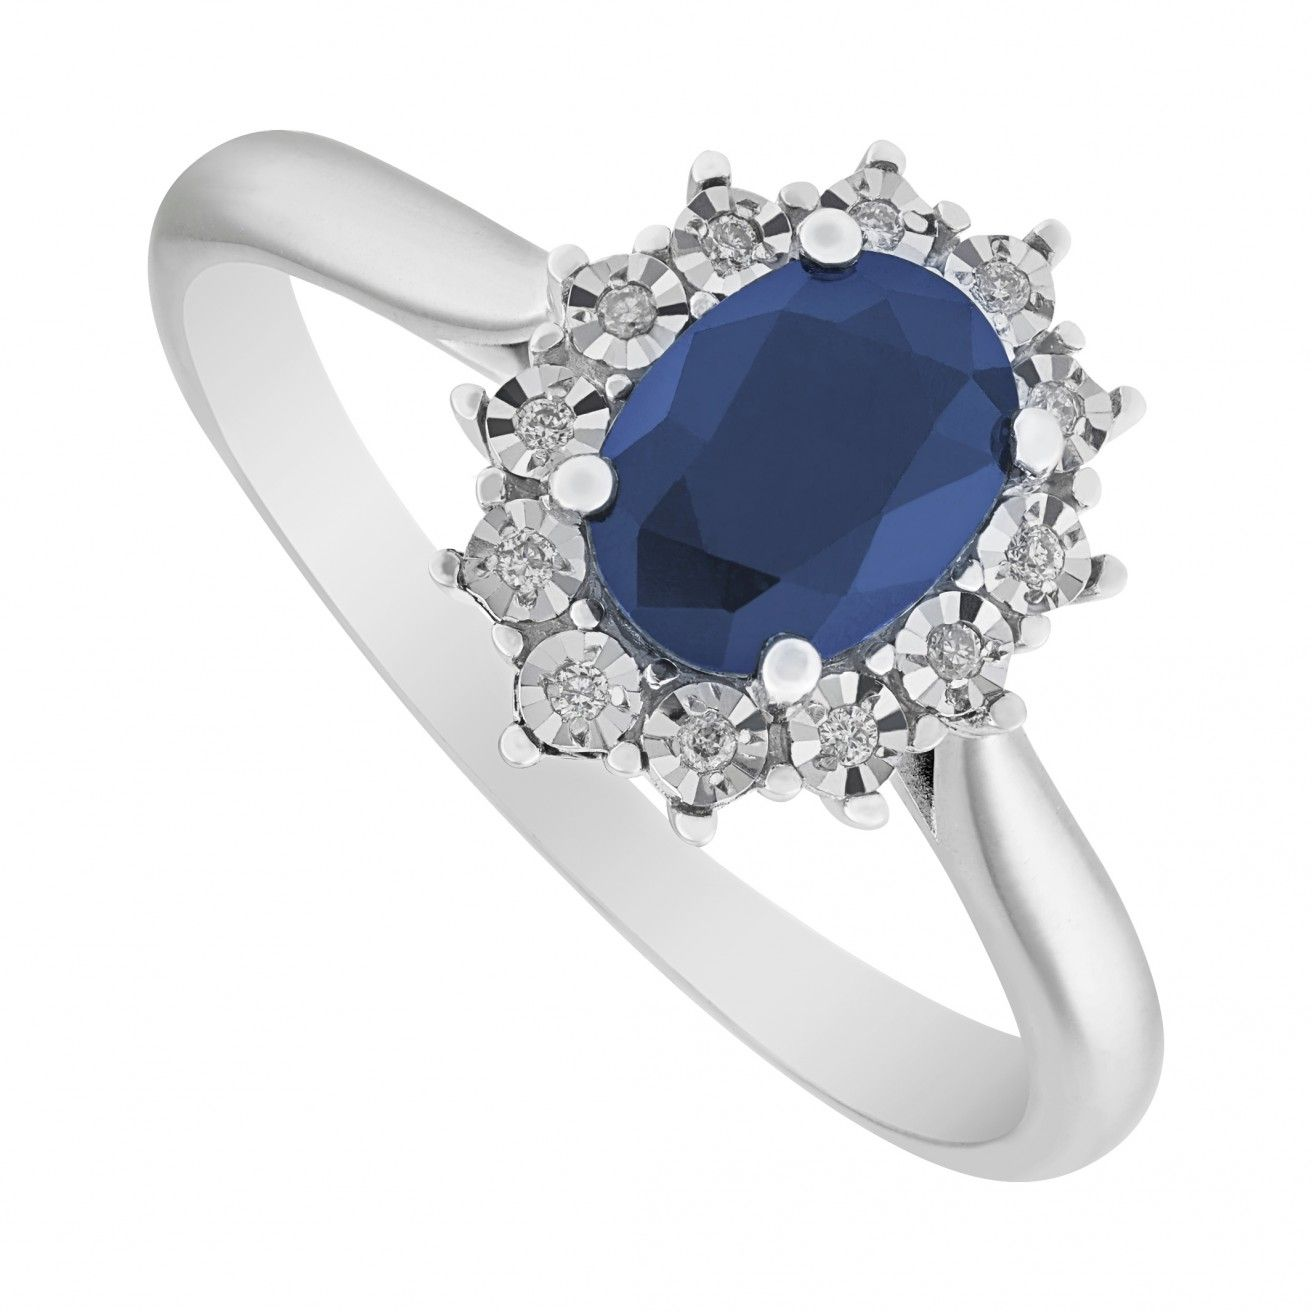 Miore Women's 9 ct White Gold Oval Sapphire Ring LcsdszOy